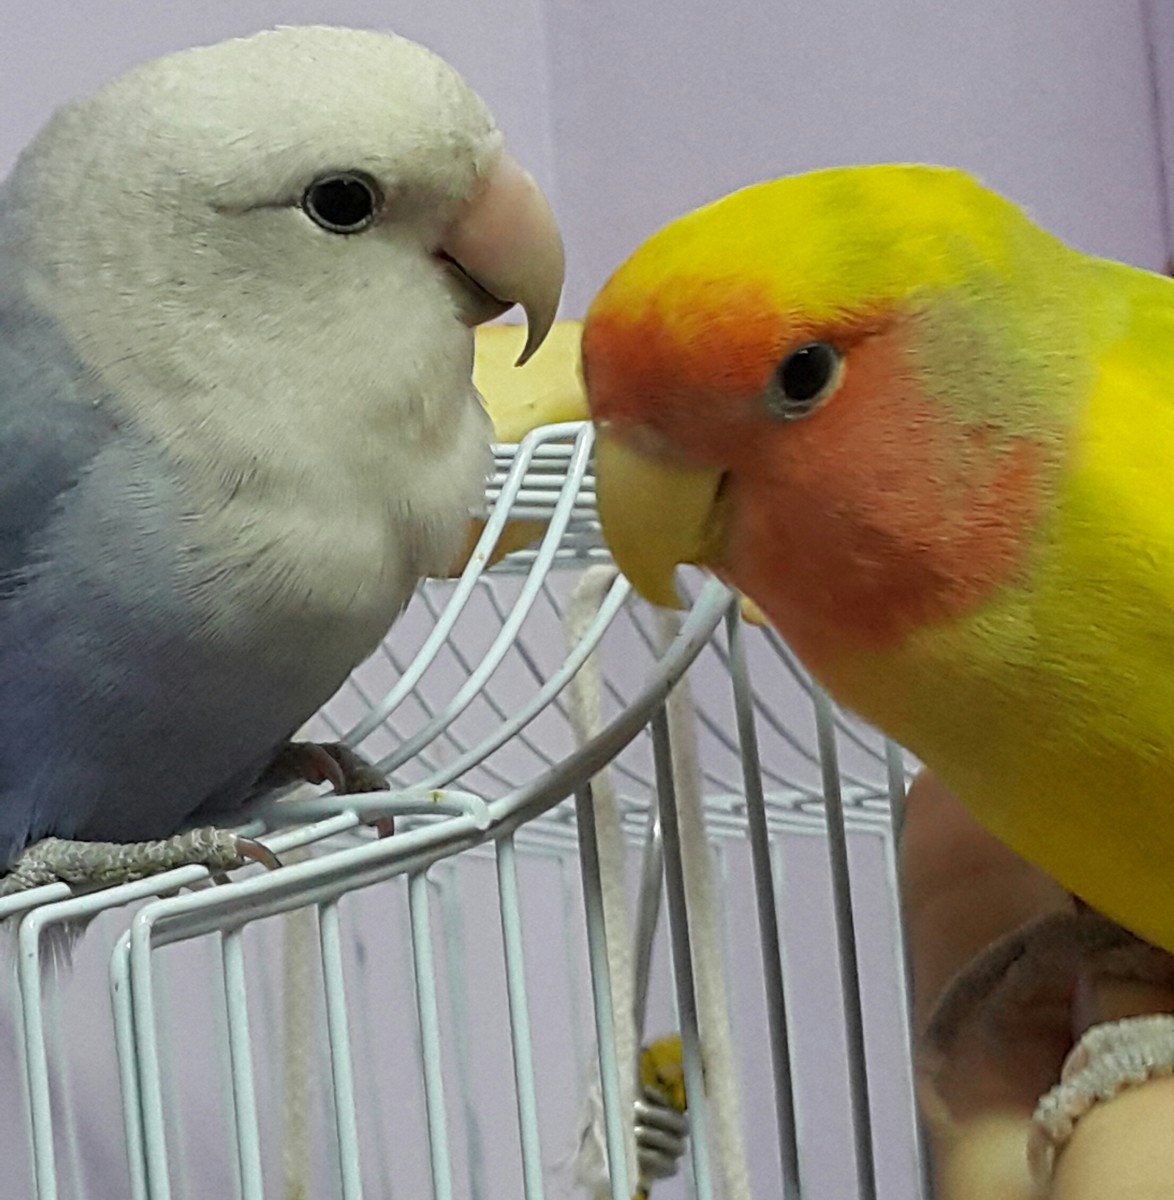 Lovebird Courtship and Mating: What We Learned | PetHelpful